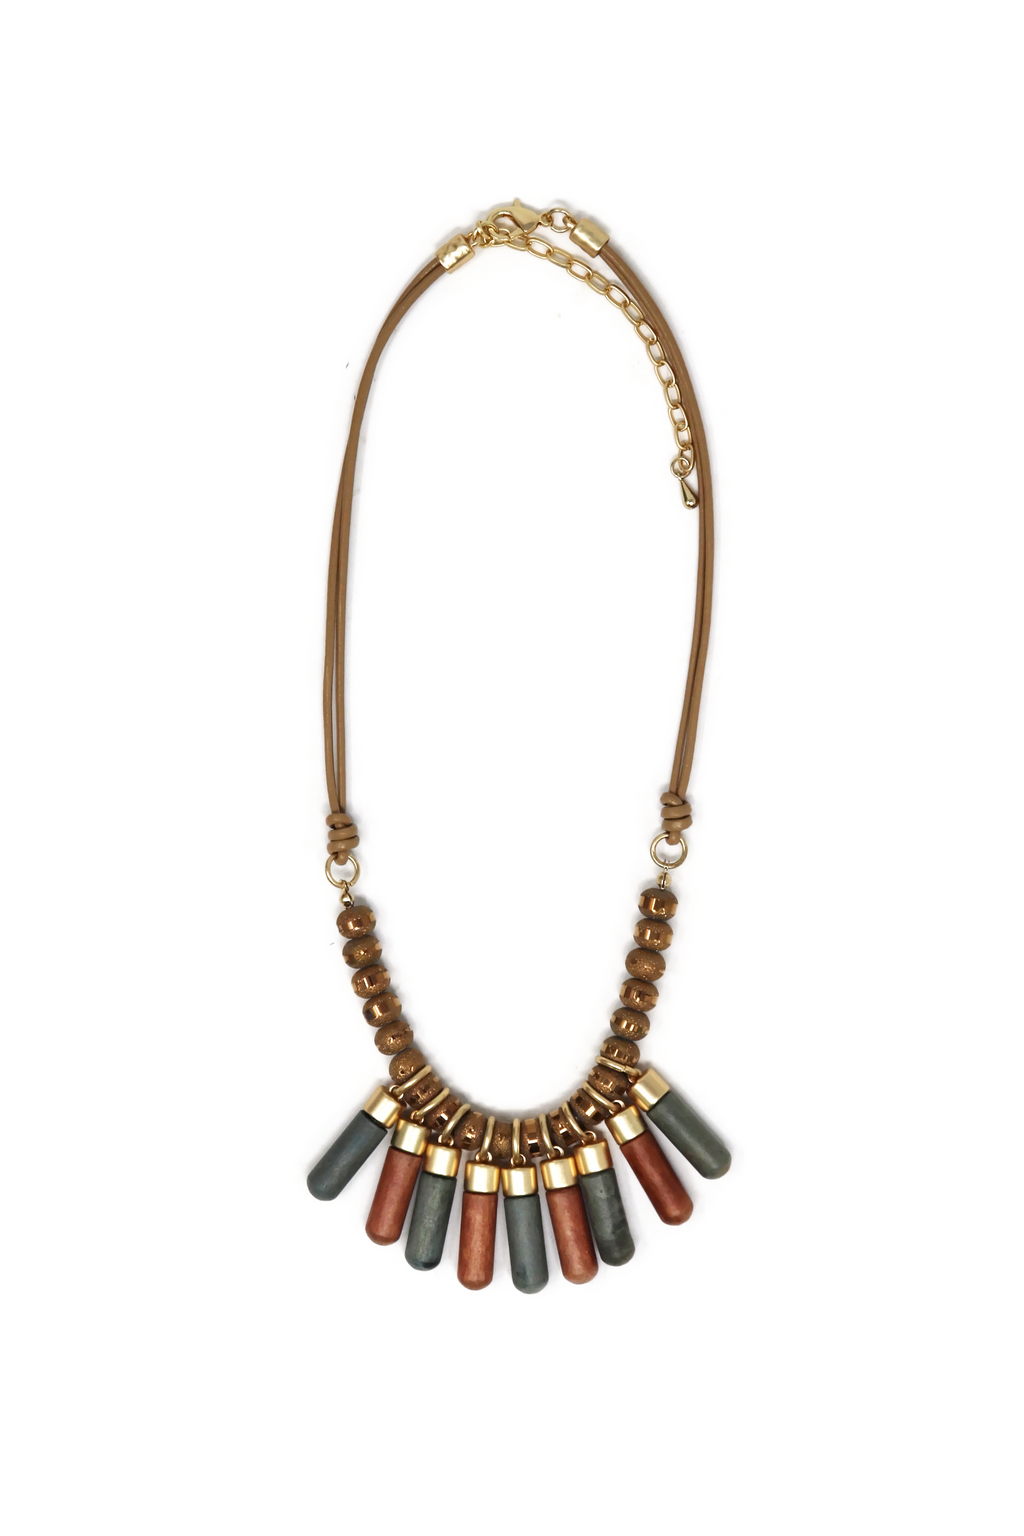 Leather short necklaces modern Egypt style